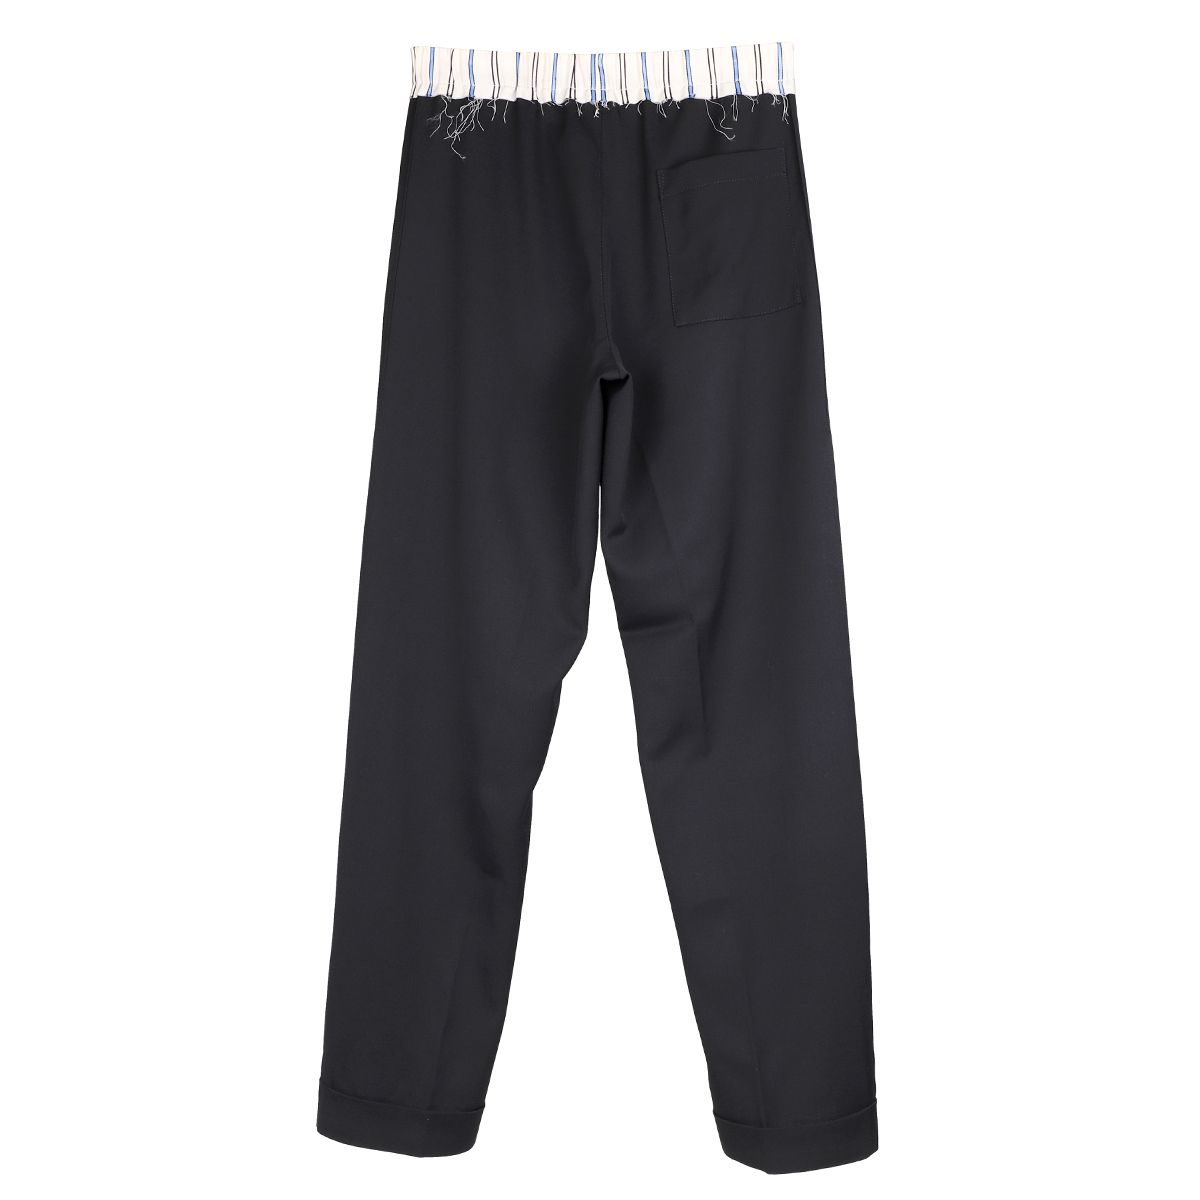 WALES BONNER STERLING TAILORED PYJAMA TROUSERS / BLACK-IVORY